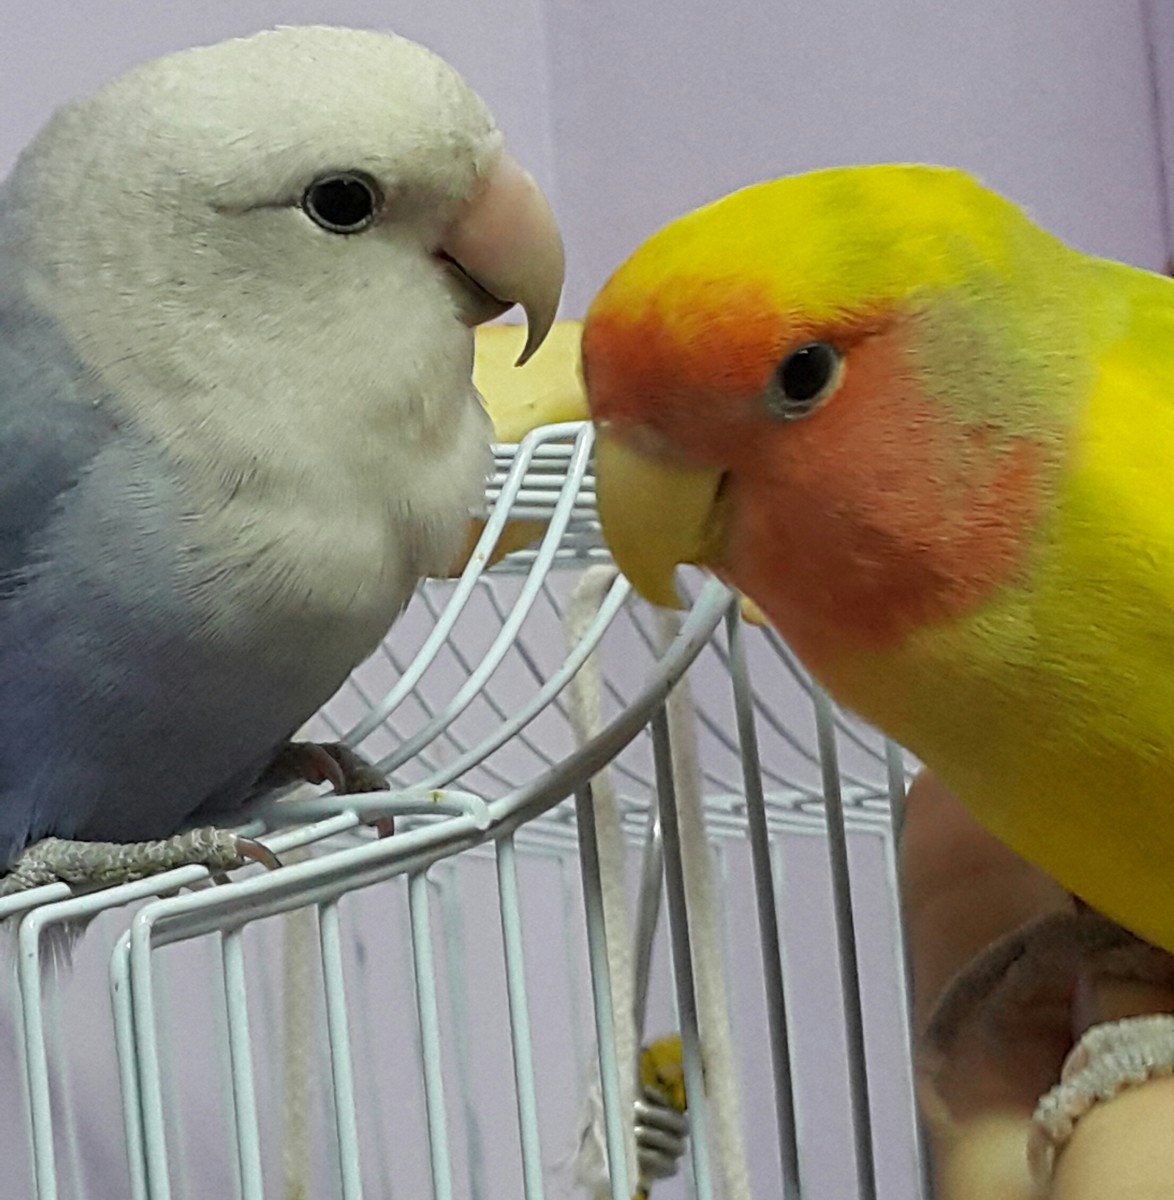 Lovebird Courtship and Mating: What We Learned